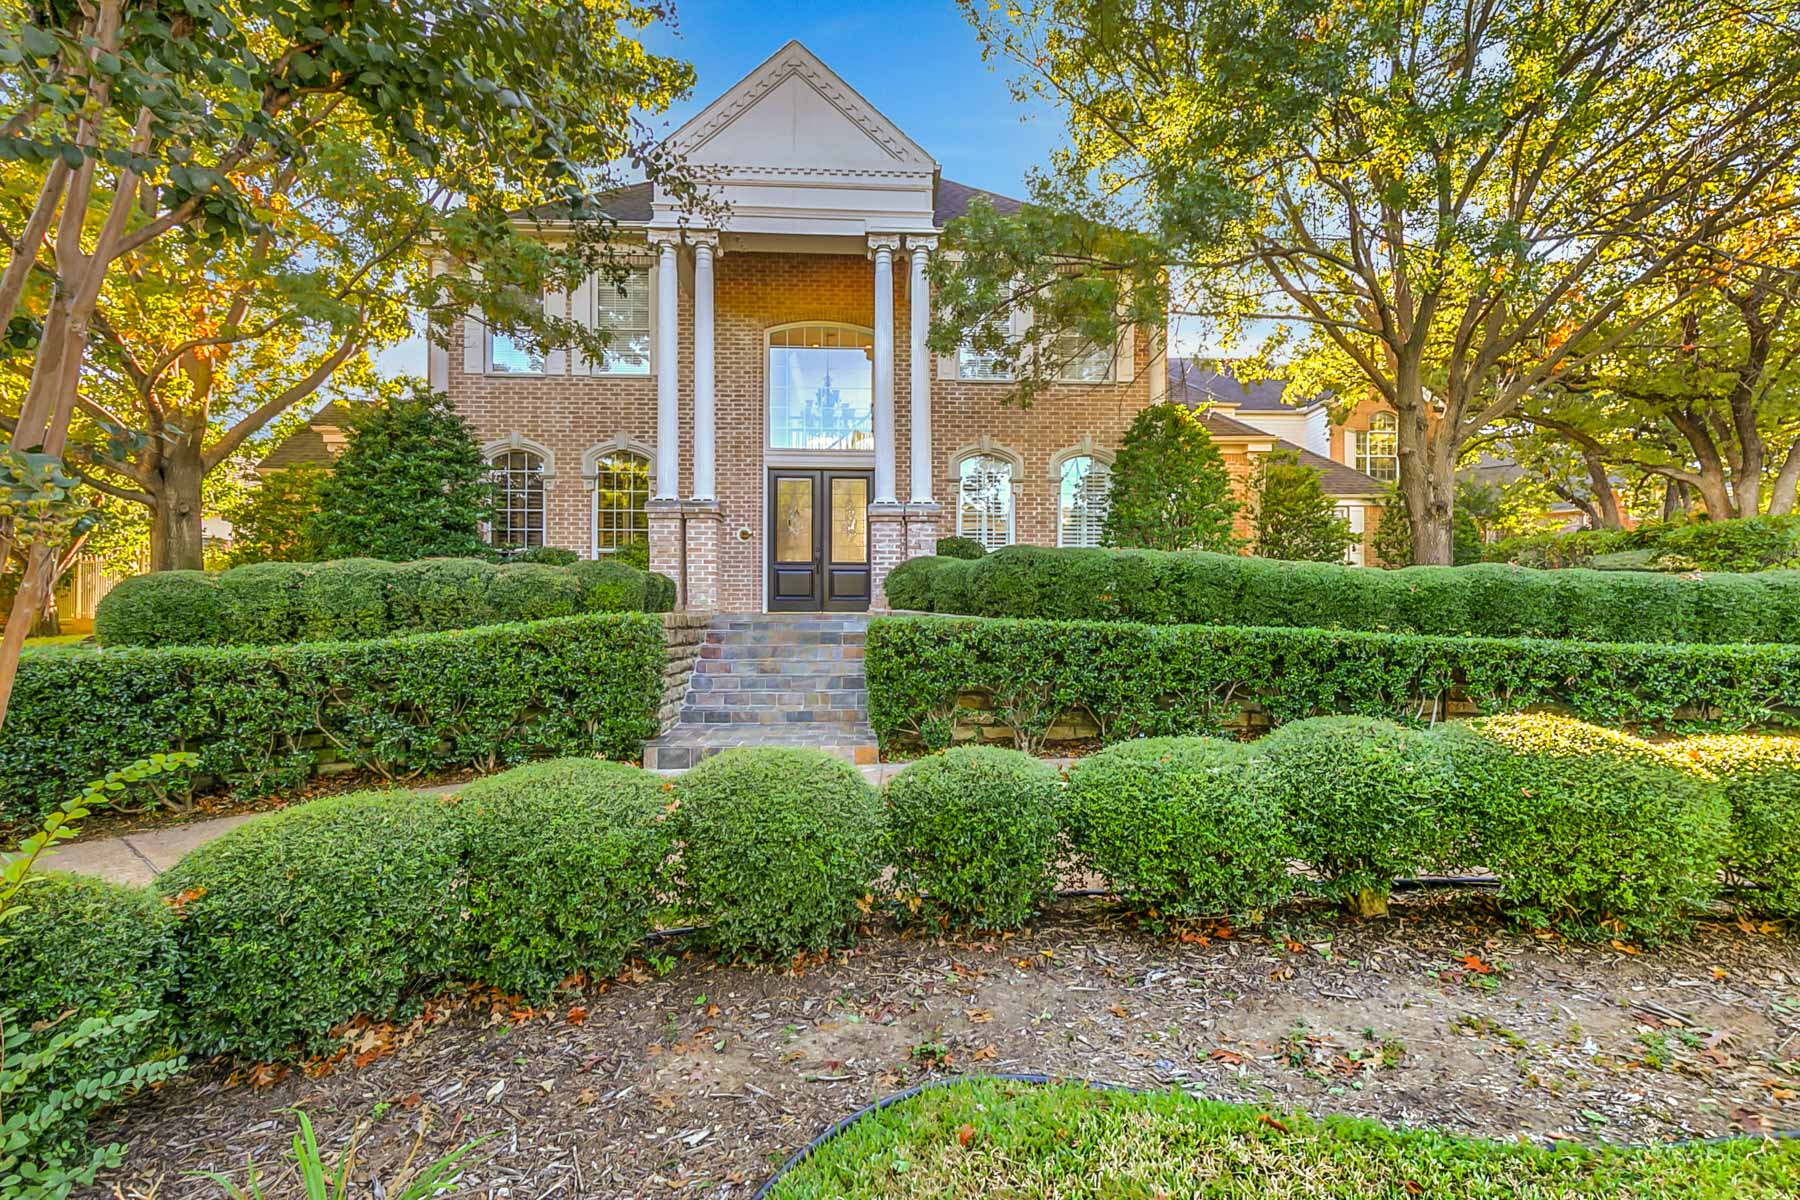 Single Family Home for Sale at Prestigious Colleyville Colonial 3103 Eastonbury Court Colleyville, Texas 76034 United States